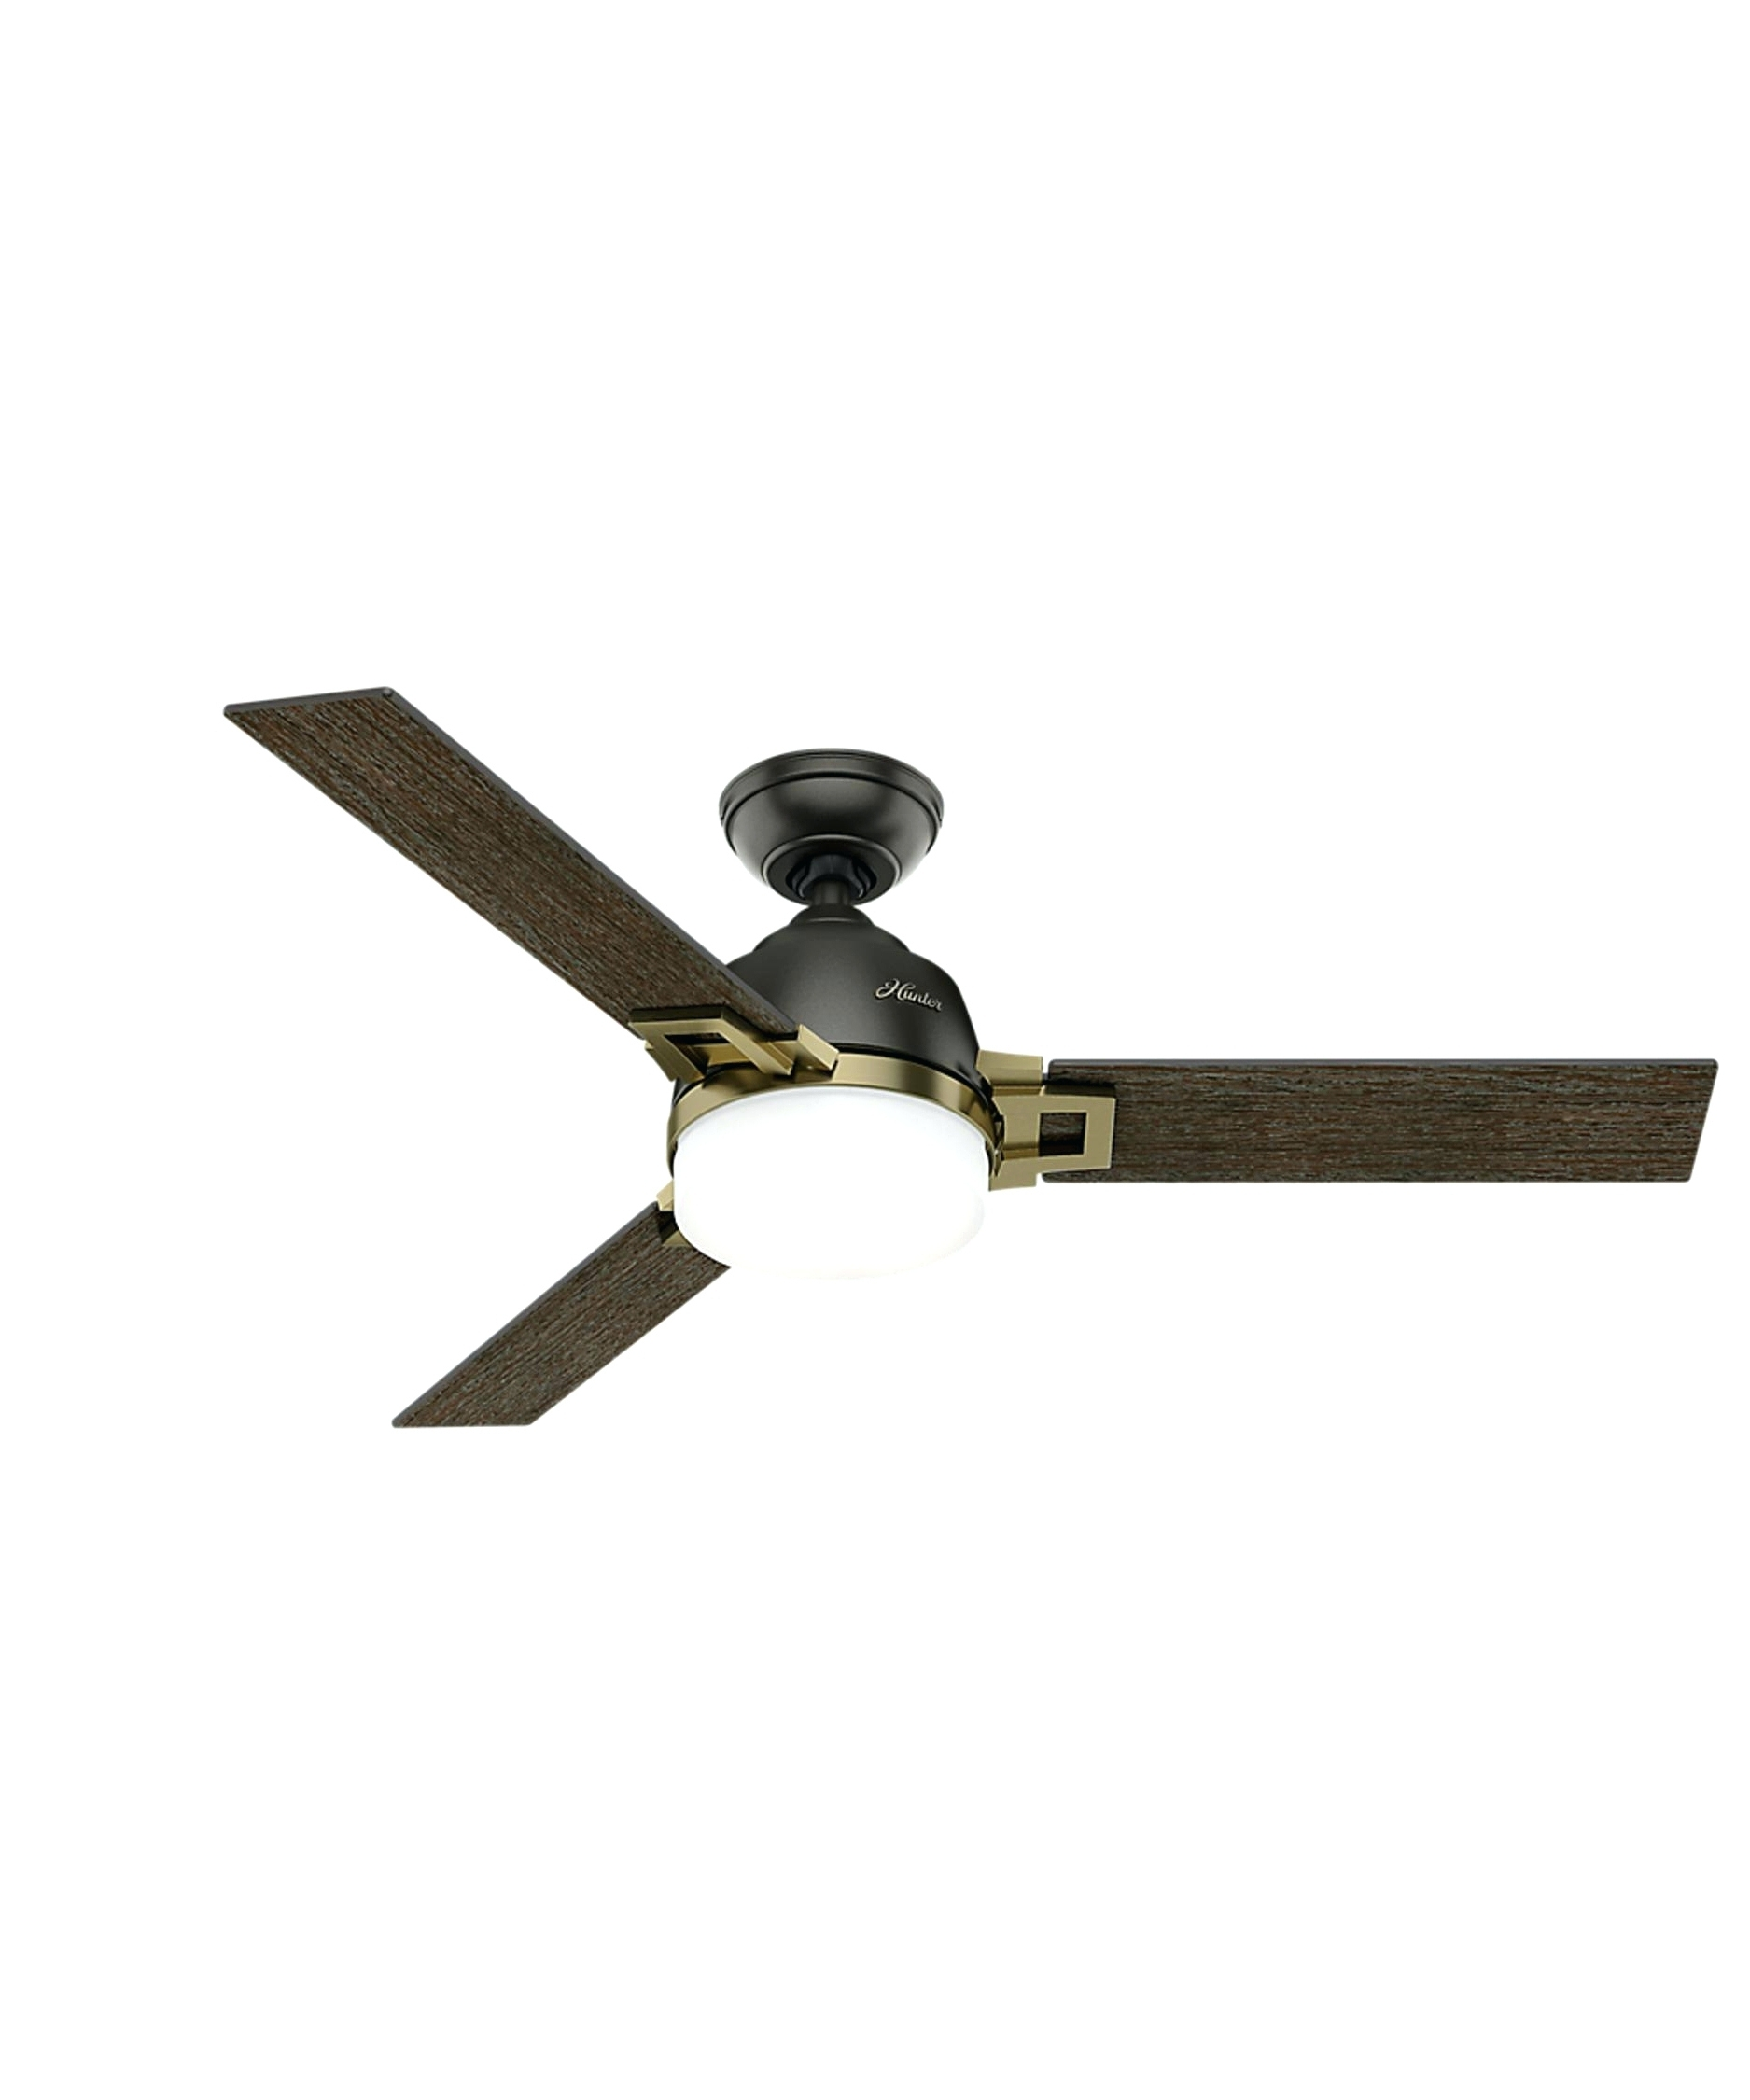 Best And Newest Best Inch Outdoor Ceiling Fan Ideas Inch Outdoor Fan 72 Of 60 Remote Throughout 48 Inch Outdoor Ceiling Fans With Light (Gallery 15 of 20)